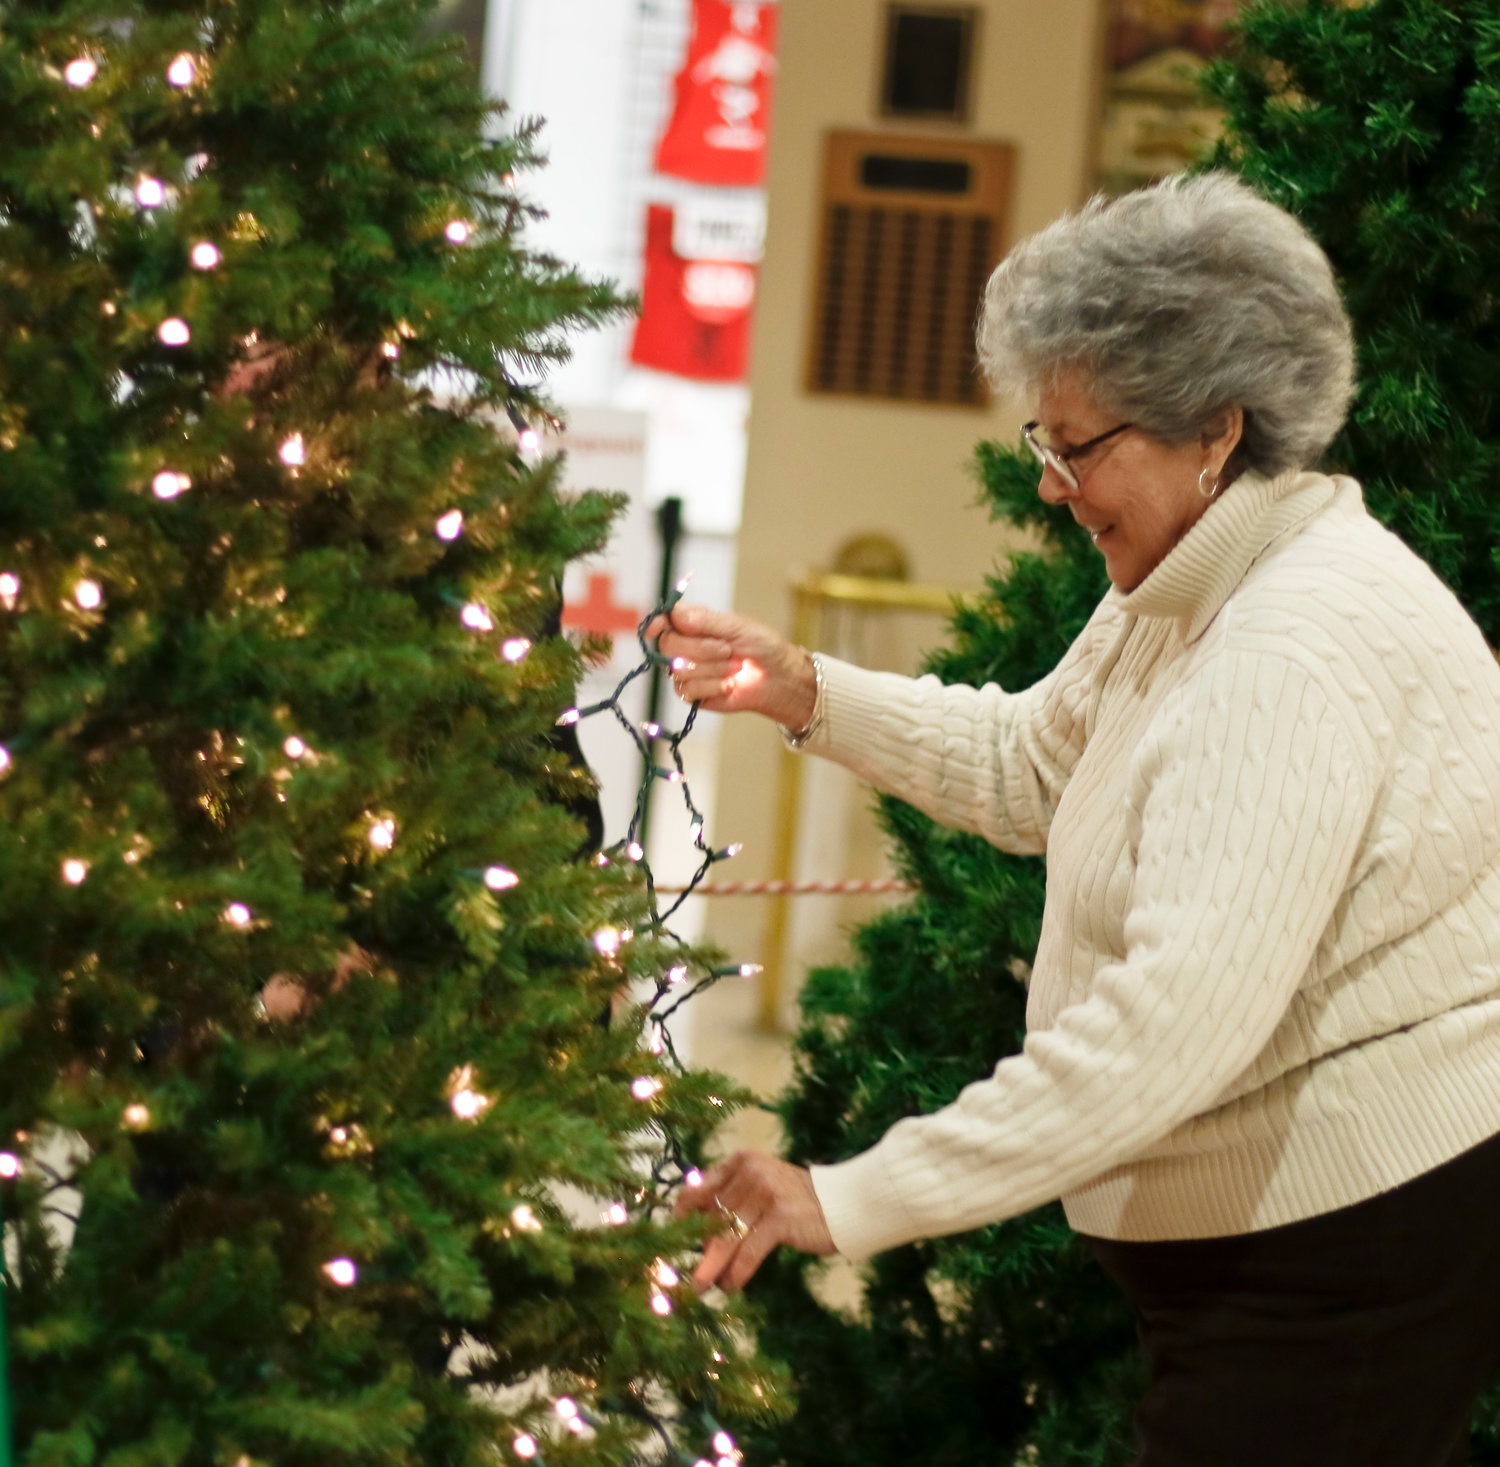 For the second year in a row the Long Island Quilters decorated a tree at the Recreation Center. Susan Merkle helped wrap the tree with sparkly lights.